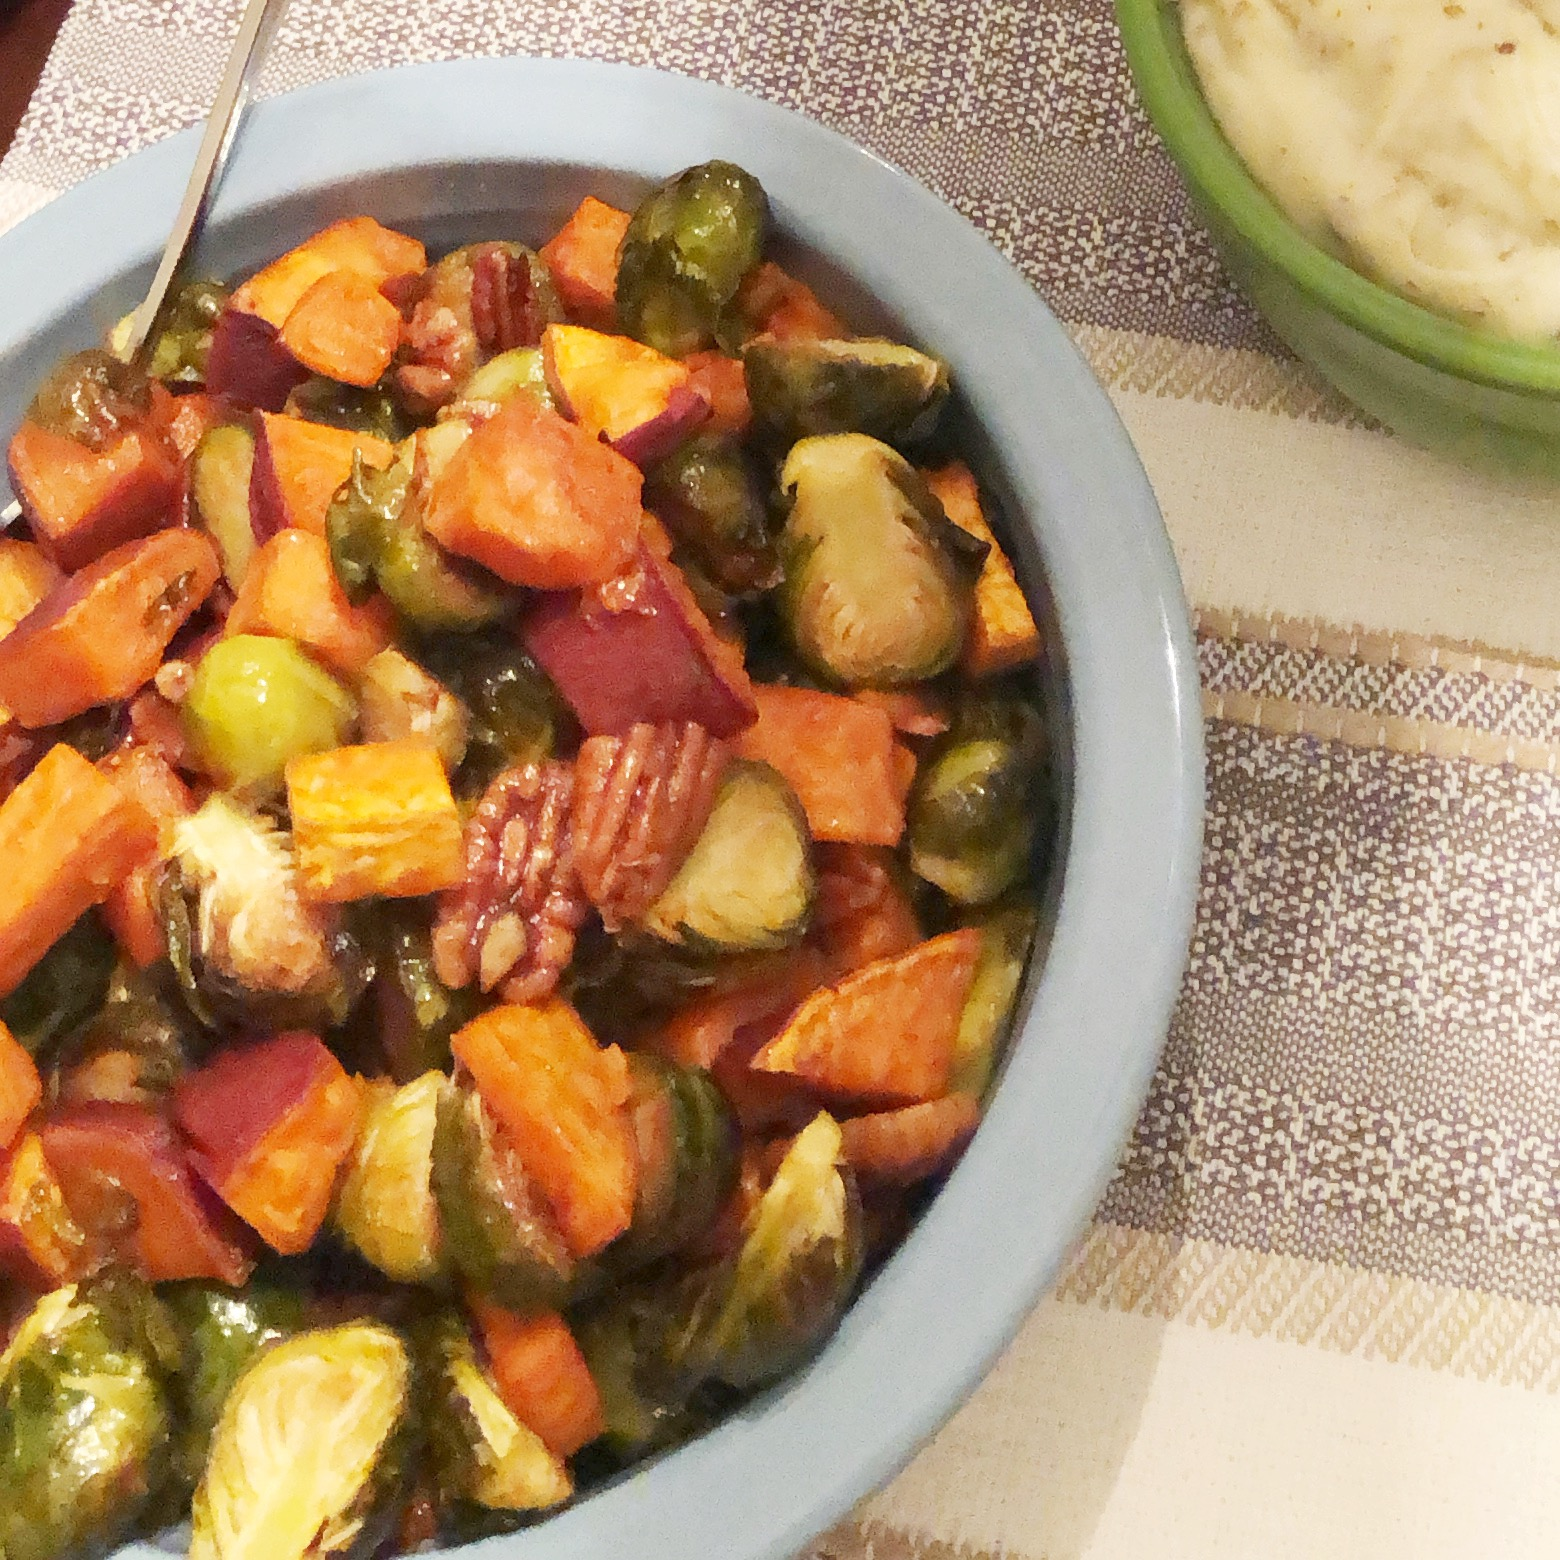 Bowl of Maple Roasted Sweet Potatoes and Brussels Sprouts with Pecans